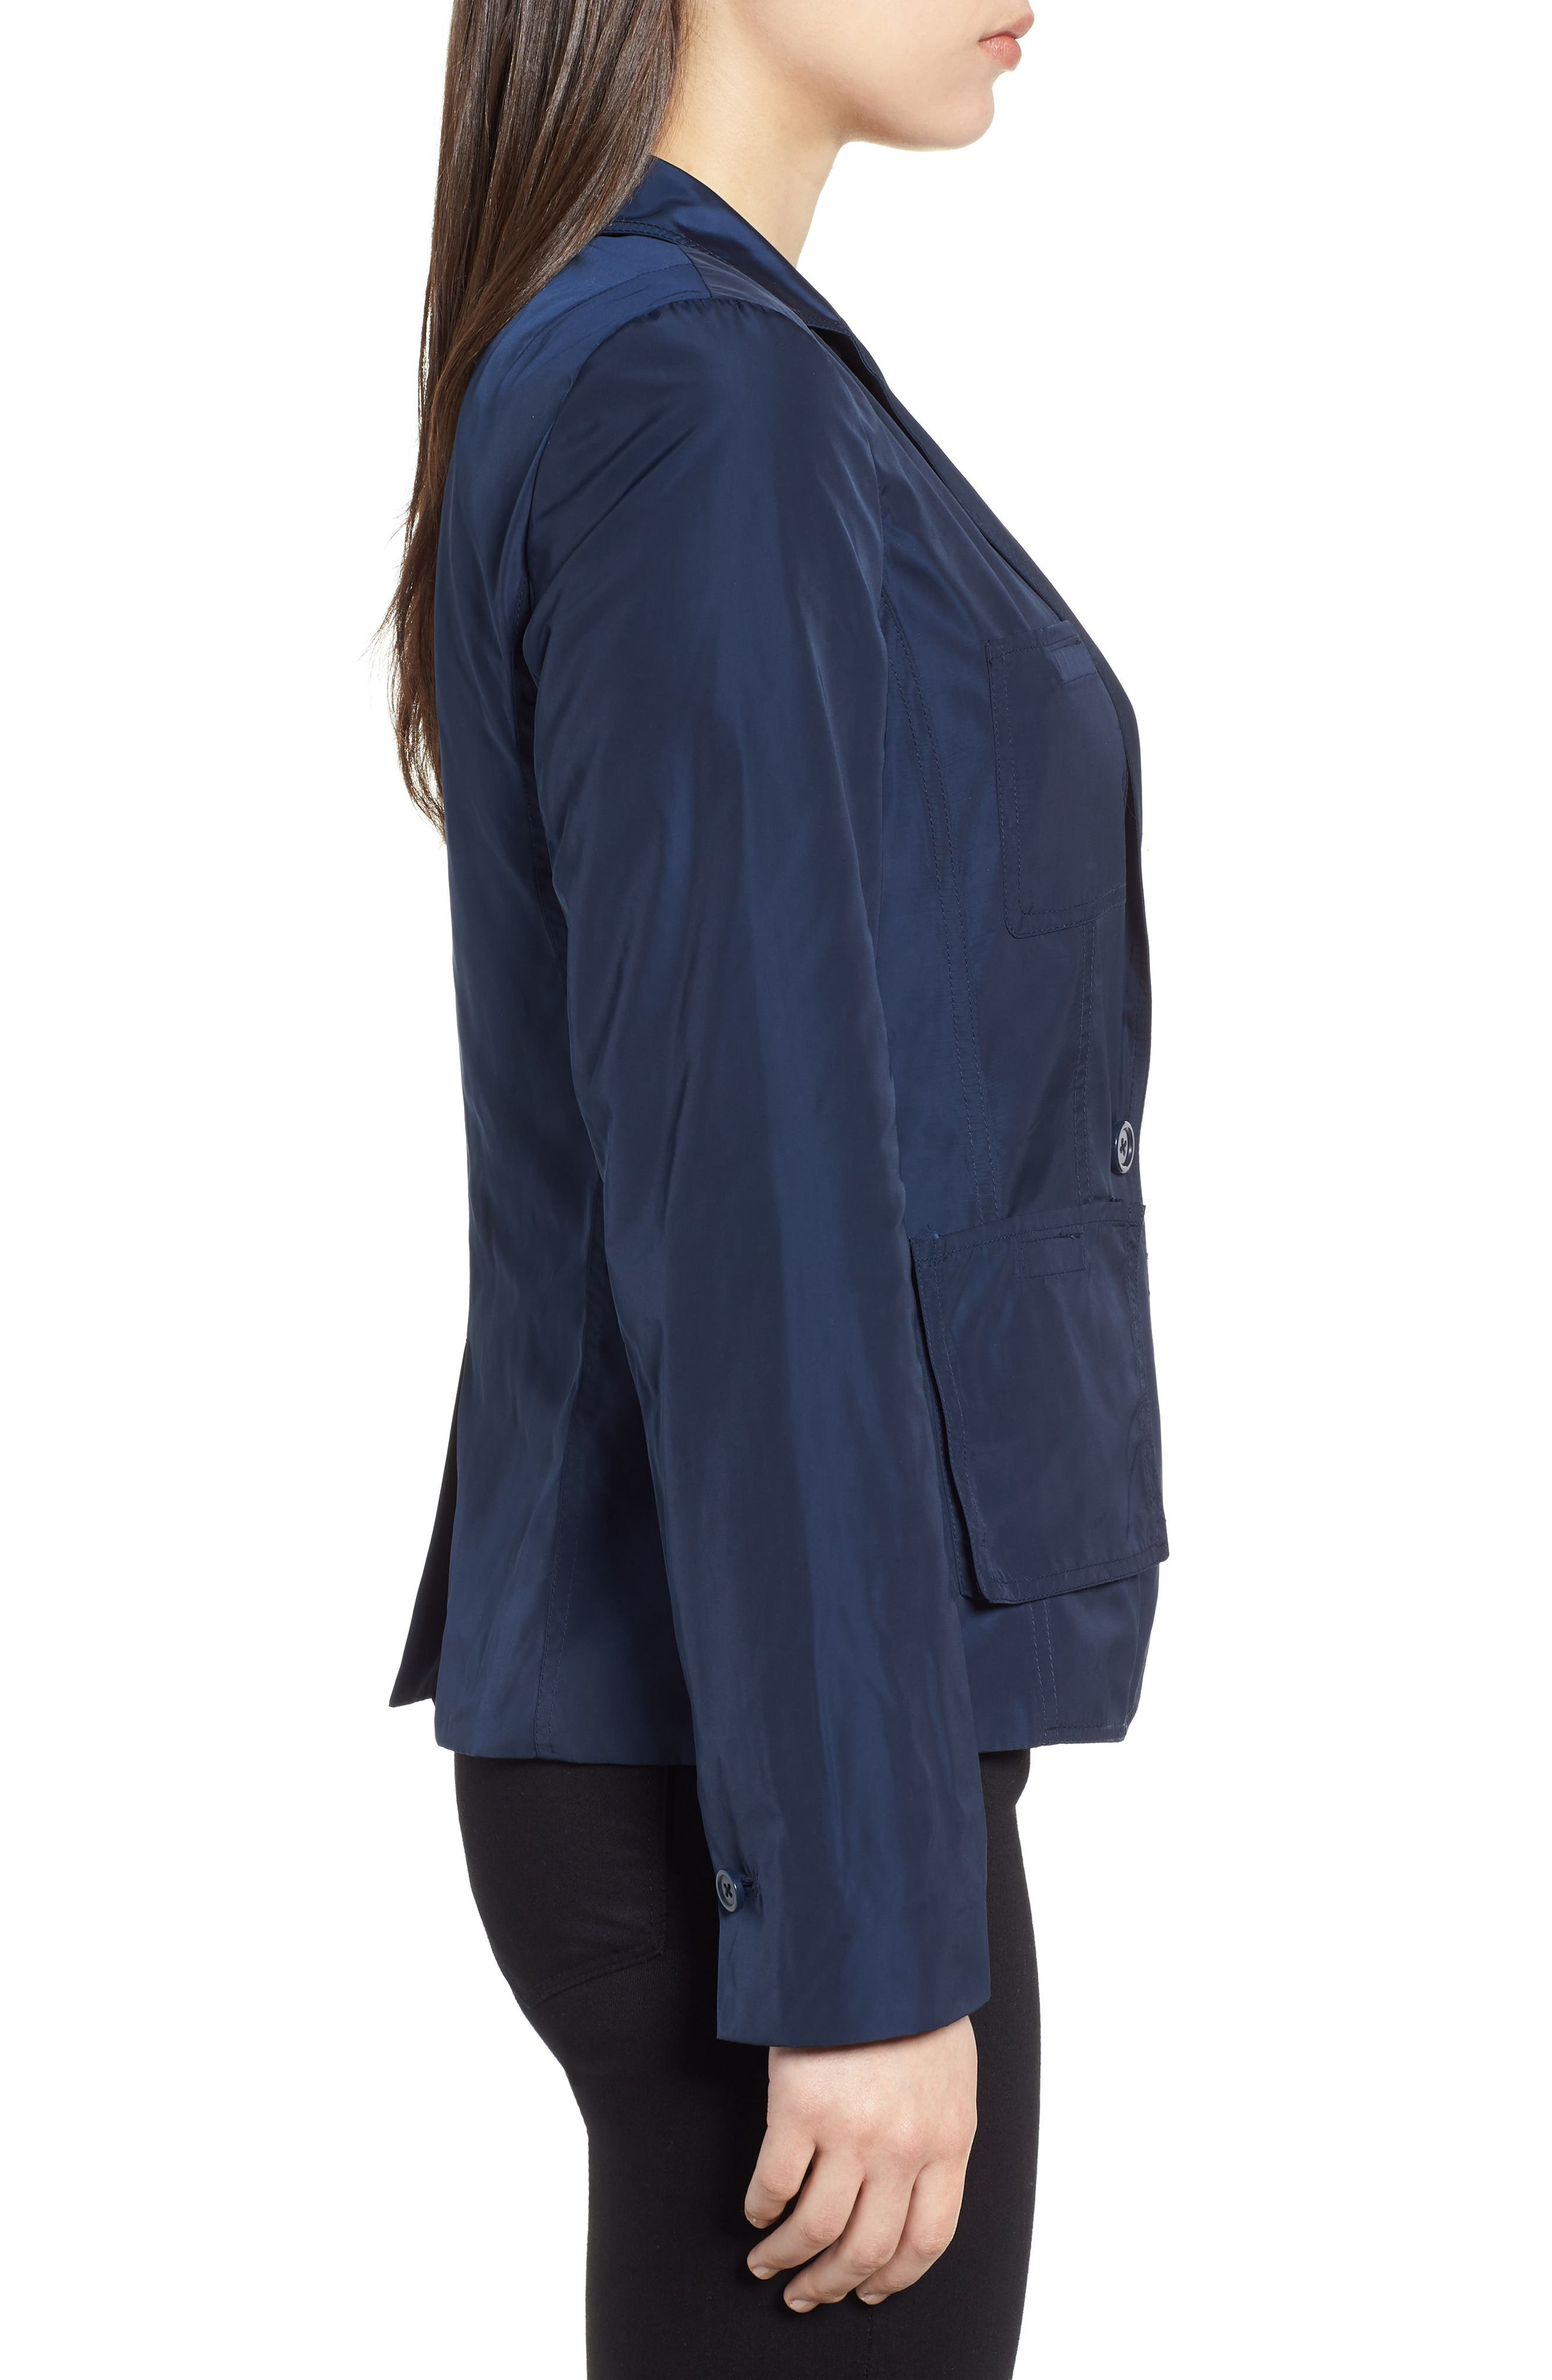 KENNETH COLE NEW YORK,                             Two-Button Blazer,                             Alternate thumbnail 3, color,                             404